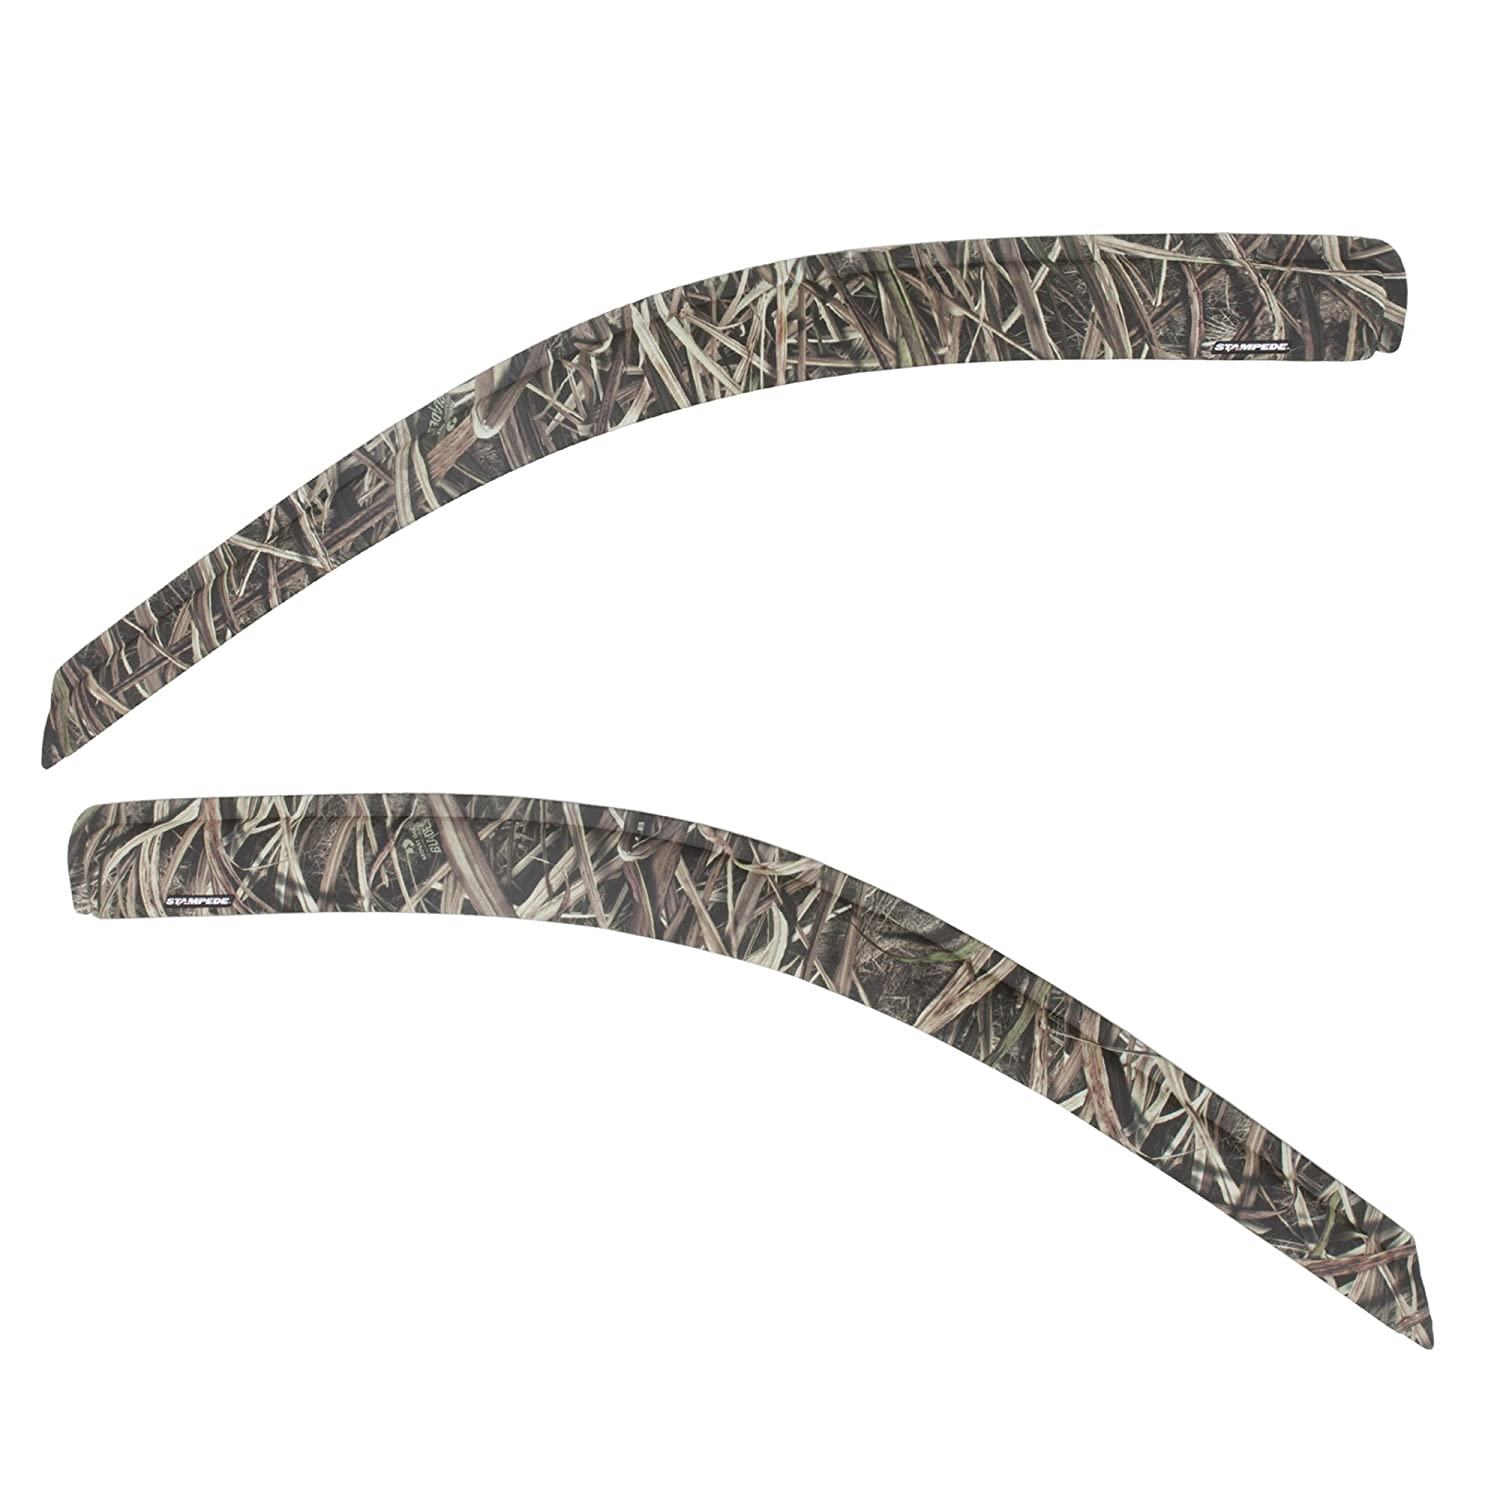 Mossy Oak Shadow Grass Blades Camo Pattern 2 Piece Stampede 6061-14 Tape-Onz Side Window Deflector